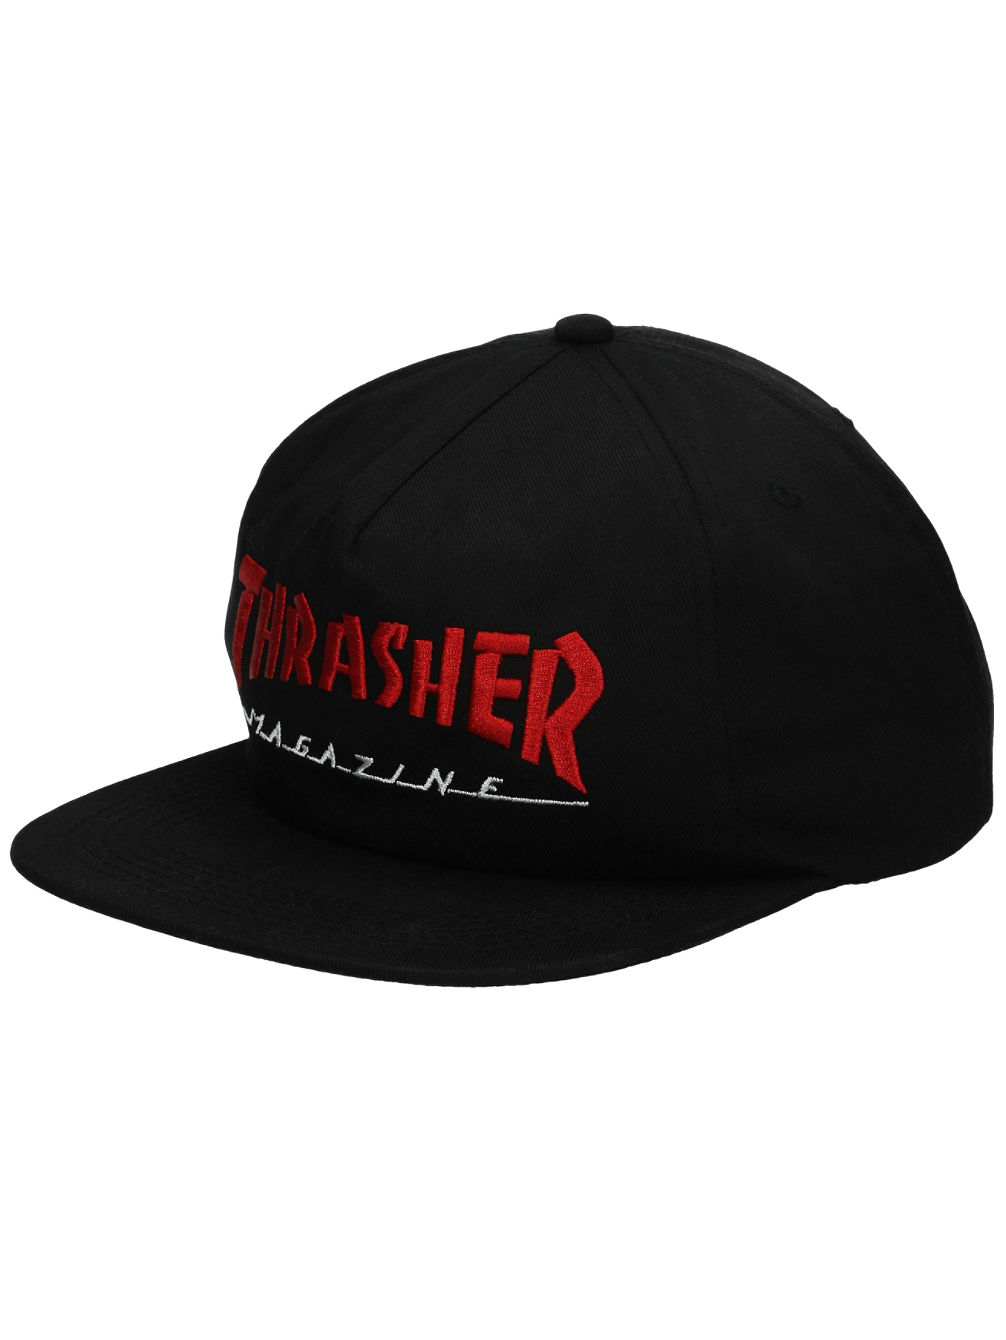 thrasher-two-tone-magazine-logo-cap